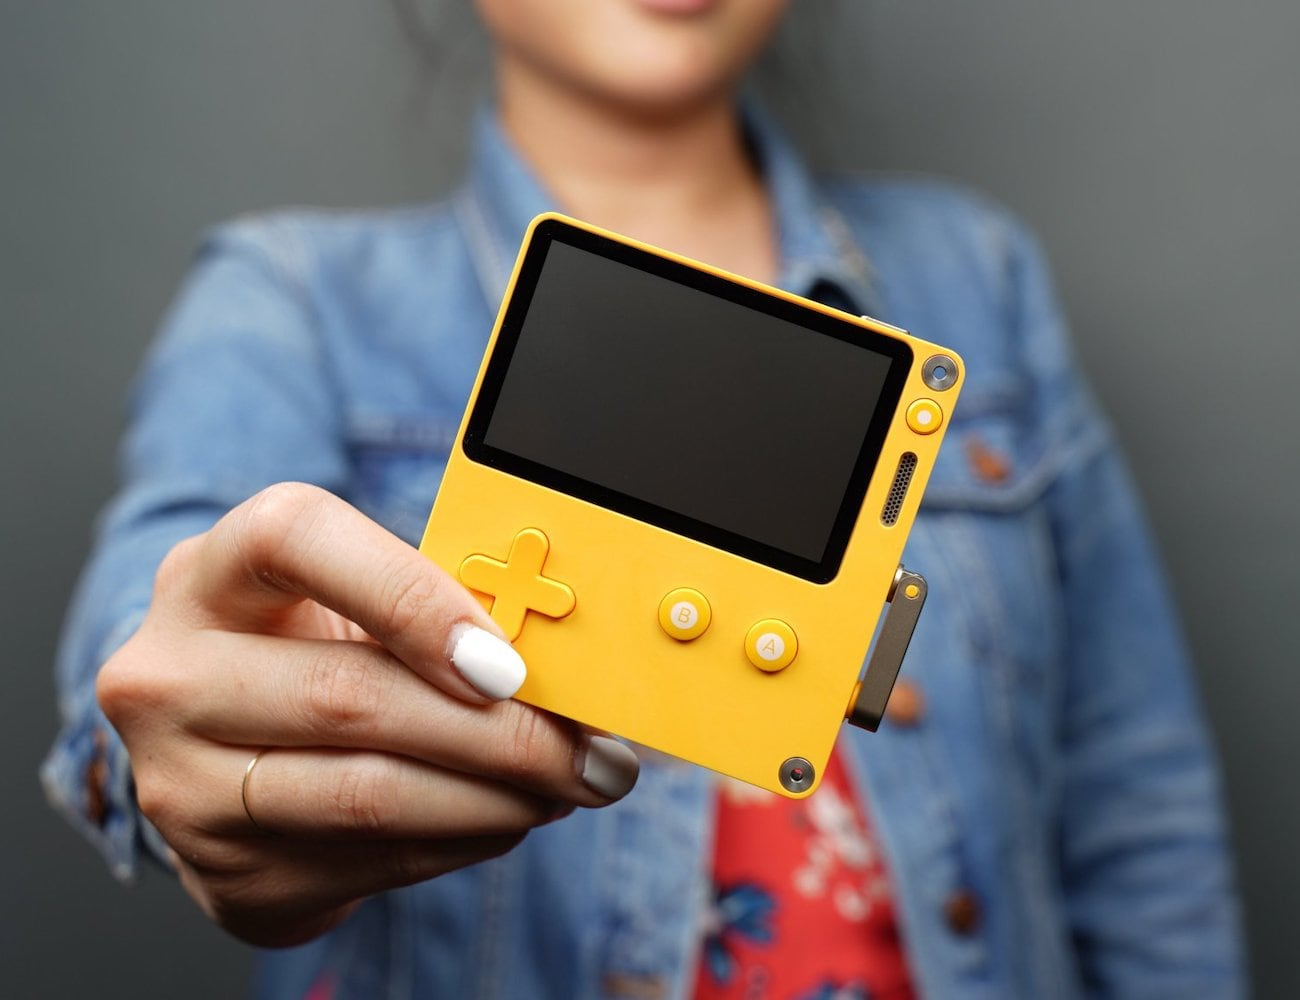 Playdate Handheld Gaming System comes with 12 unique video games